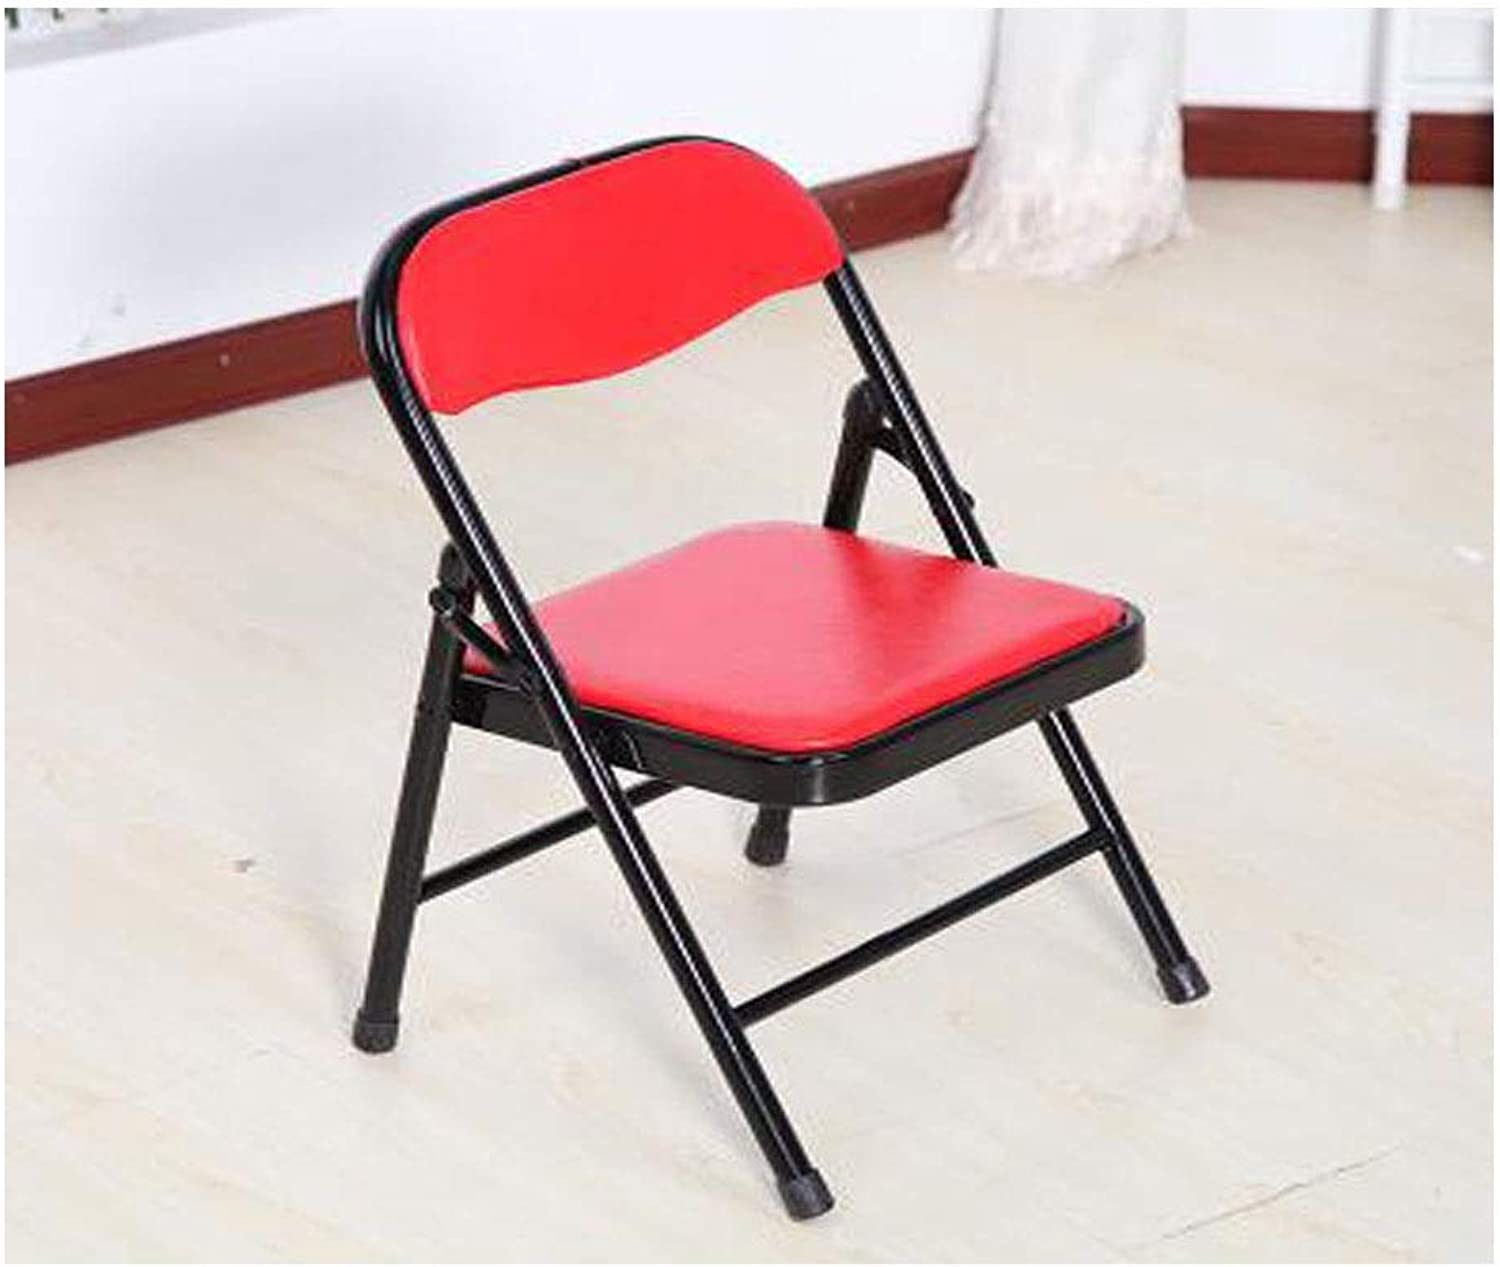 Folding Chair, color Portable Backrest Metal Chair, Suitable for Primary School Students to Learn to Write, Multi-color Optional Refinement